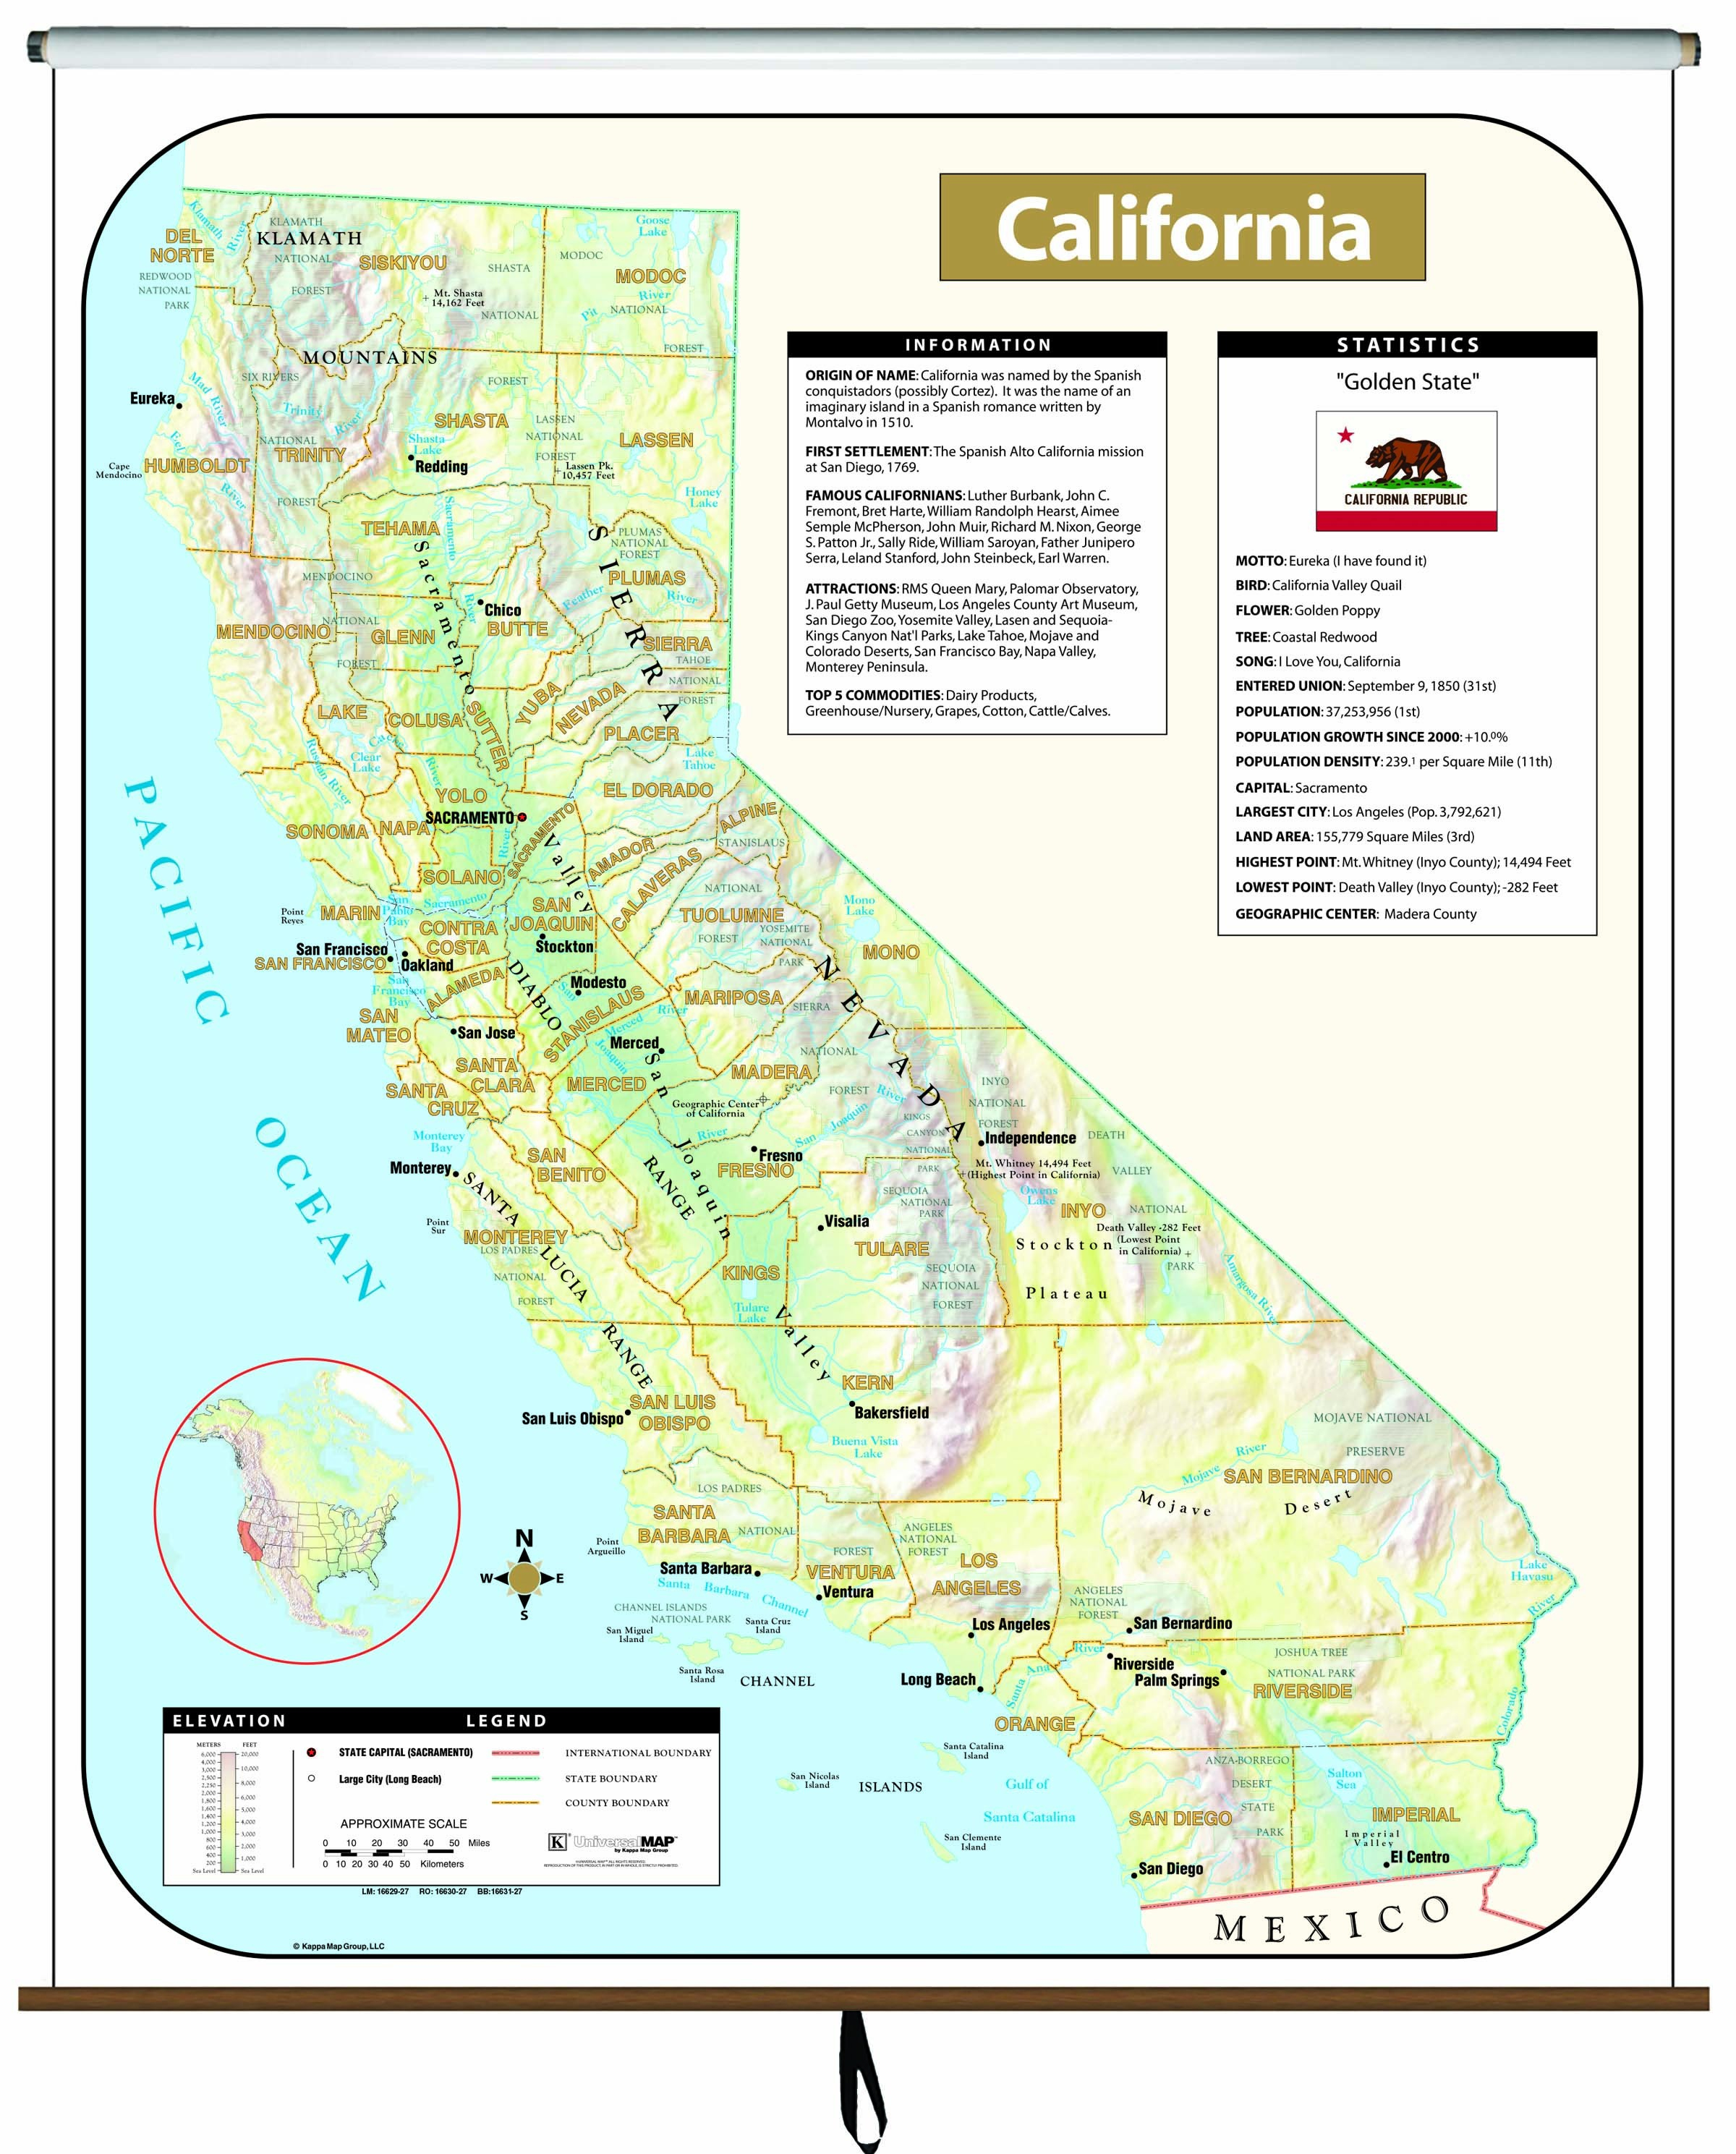 California Large Scale Shaded Relief Wall Map On Roller - Maps - Large Wall Map Of California